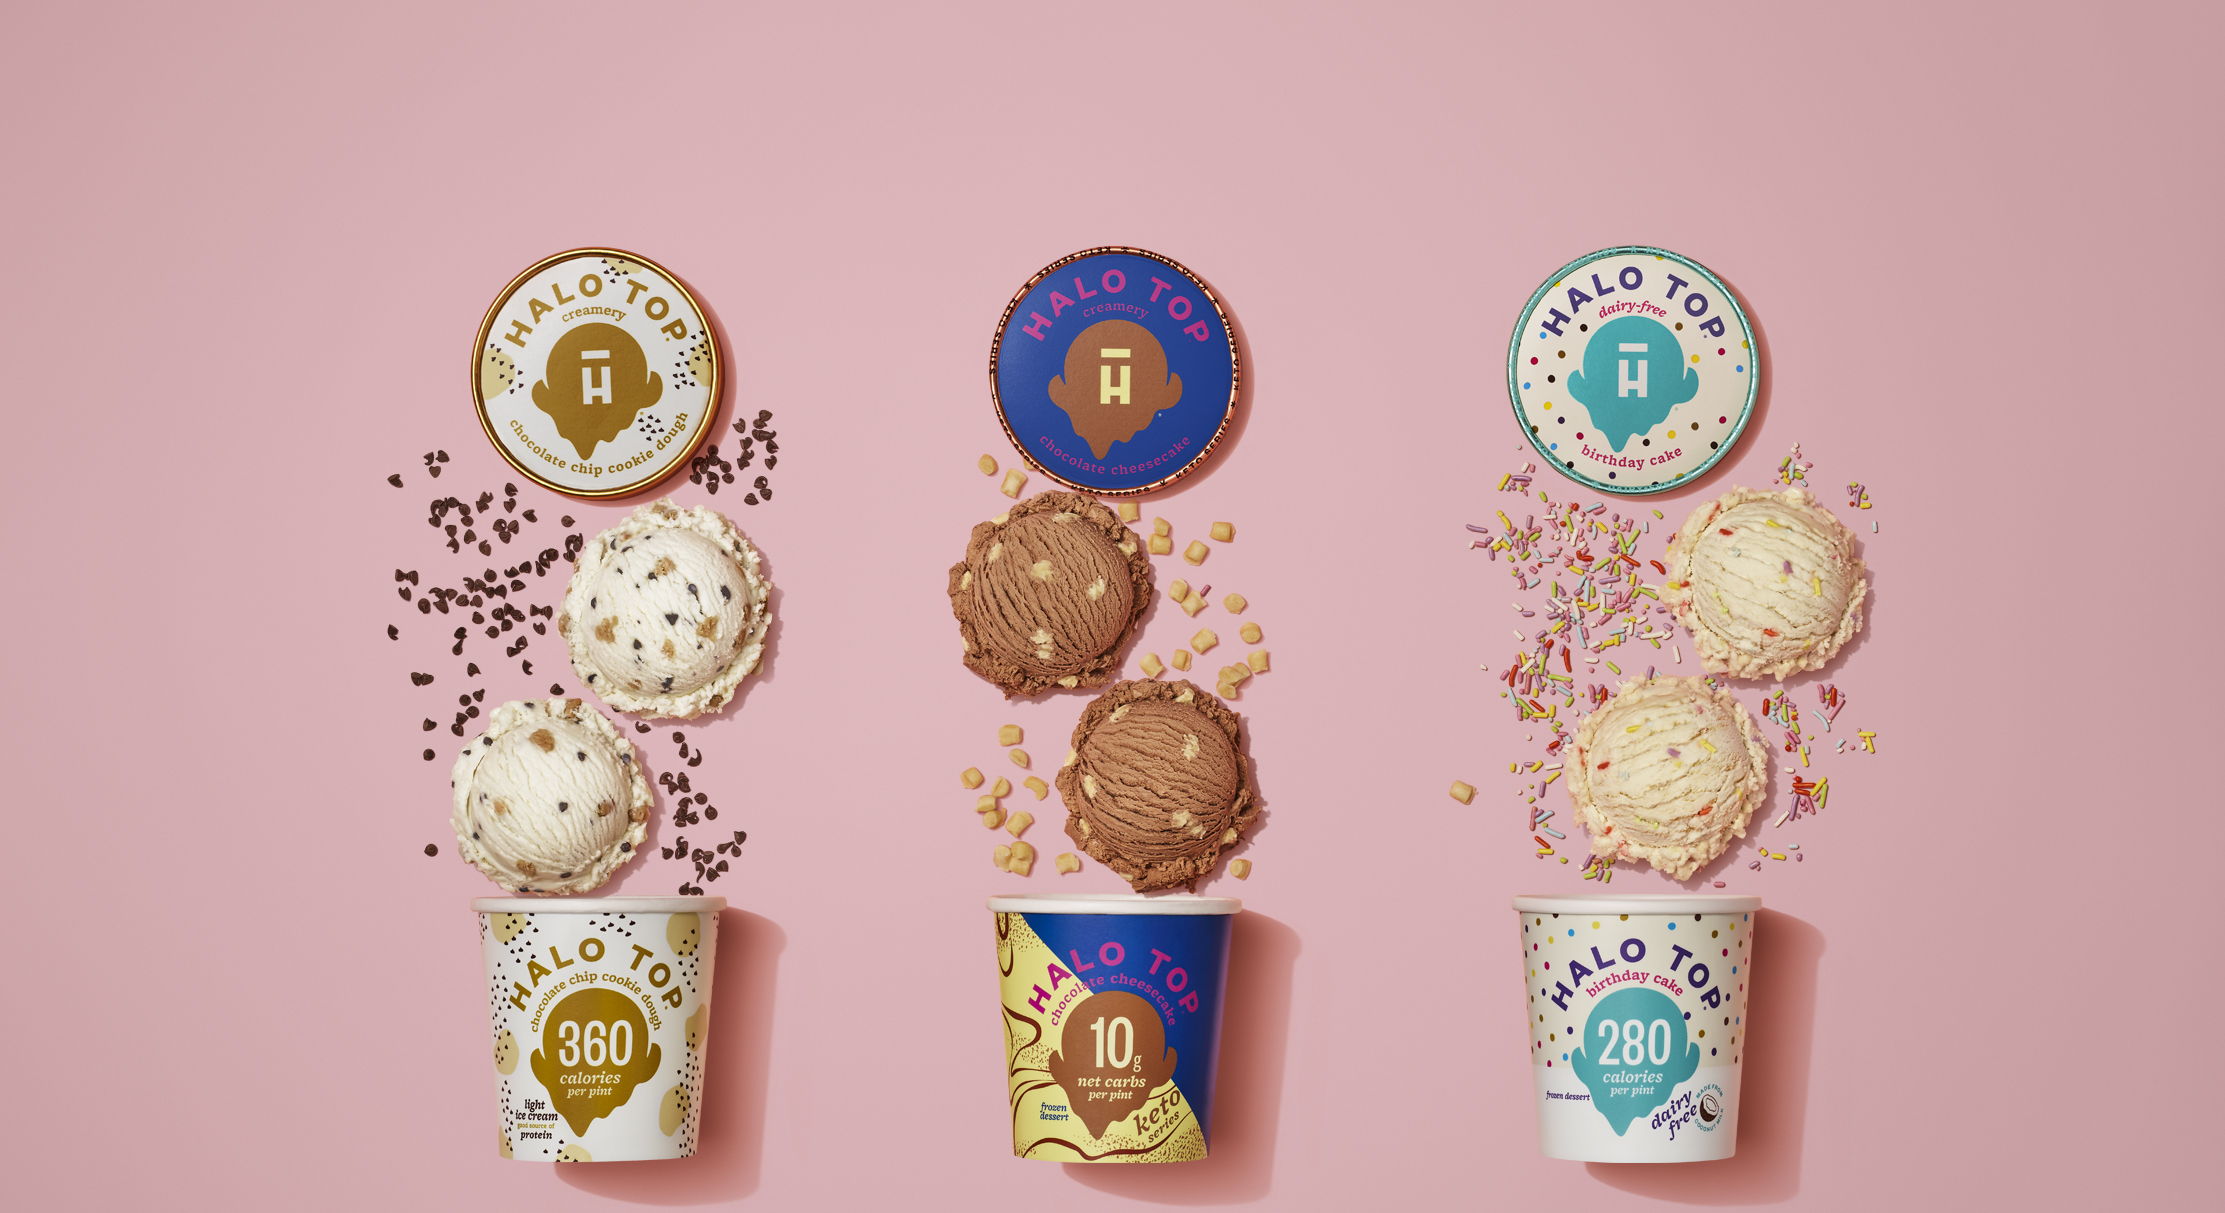 Halo Top ice cream tubs layed out